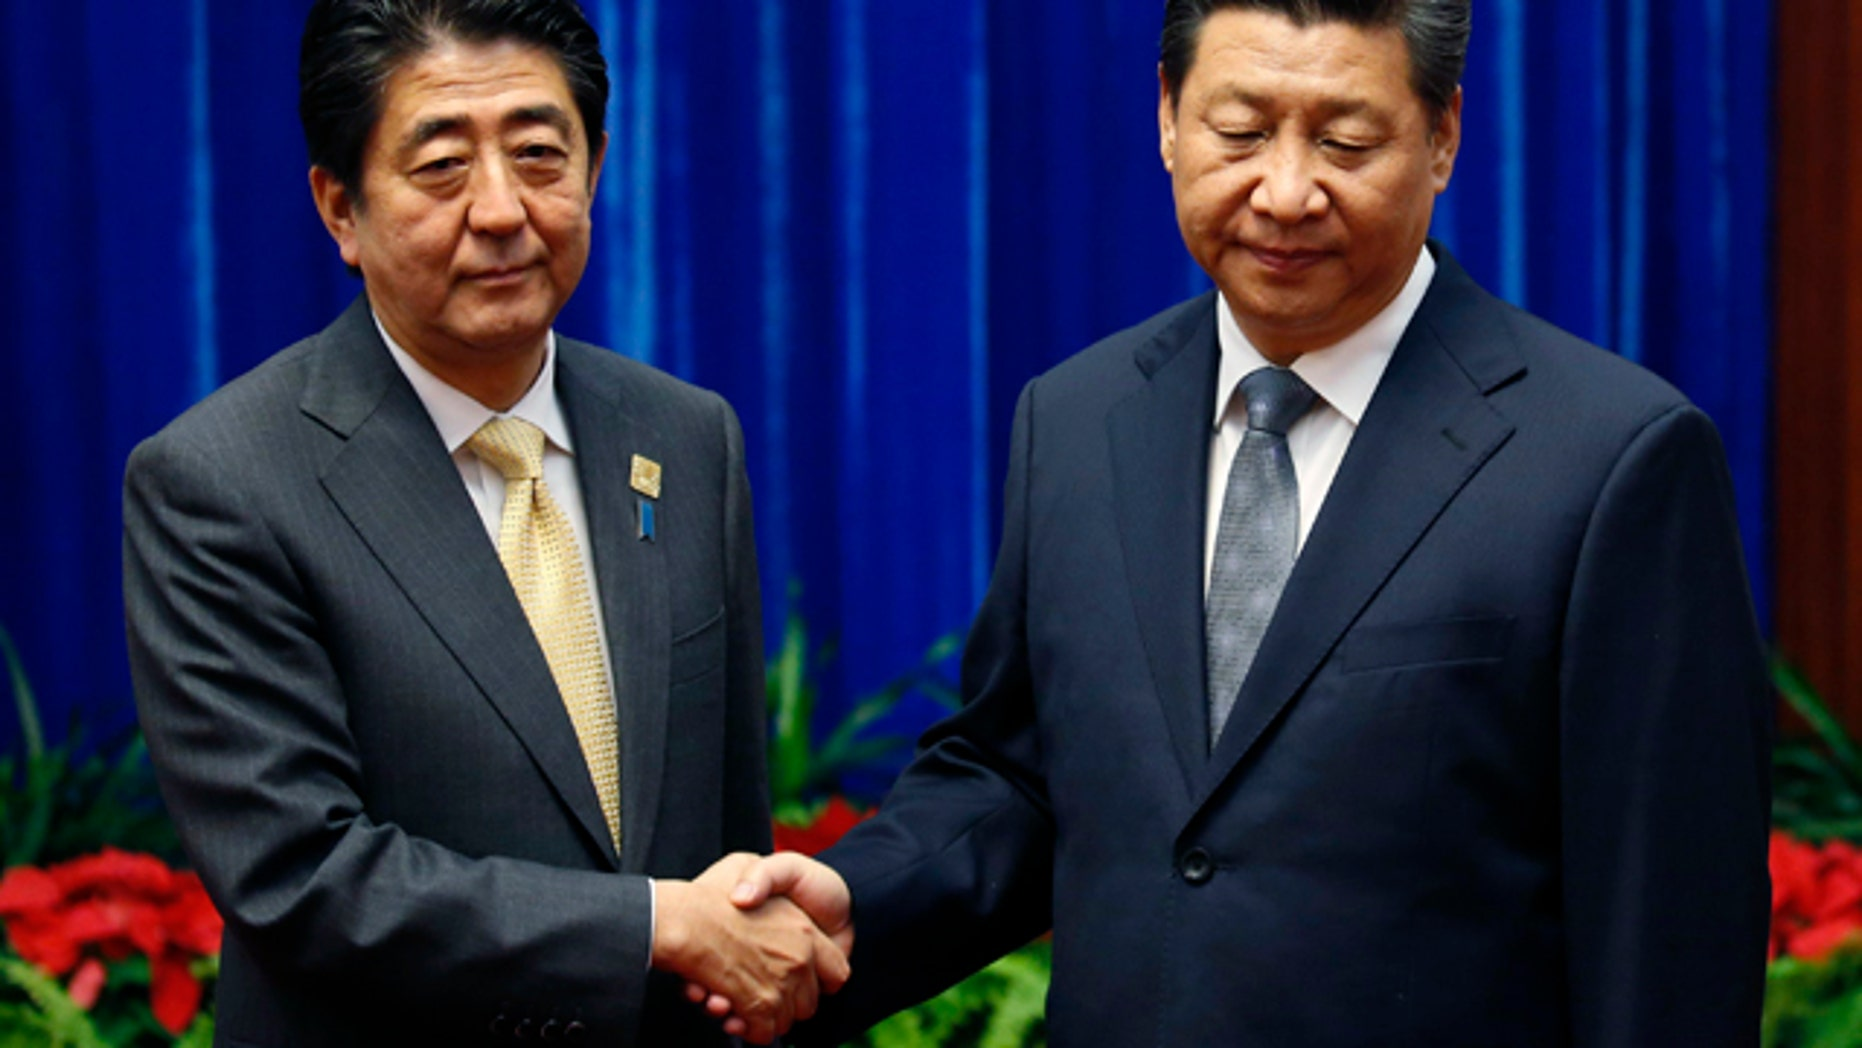 November 10, 2014: China's President Xi Jinping, right,  shakes hands with Japan's Prime Minister Shinzo Abe, during their meeting at the Great Hall of the People, on the sidelines of the Asia Pacific Economic Cooperation (APEC) meetings, in Beijing.  (AP Photo/Kim Kyung-Hoon, Pool)